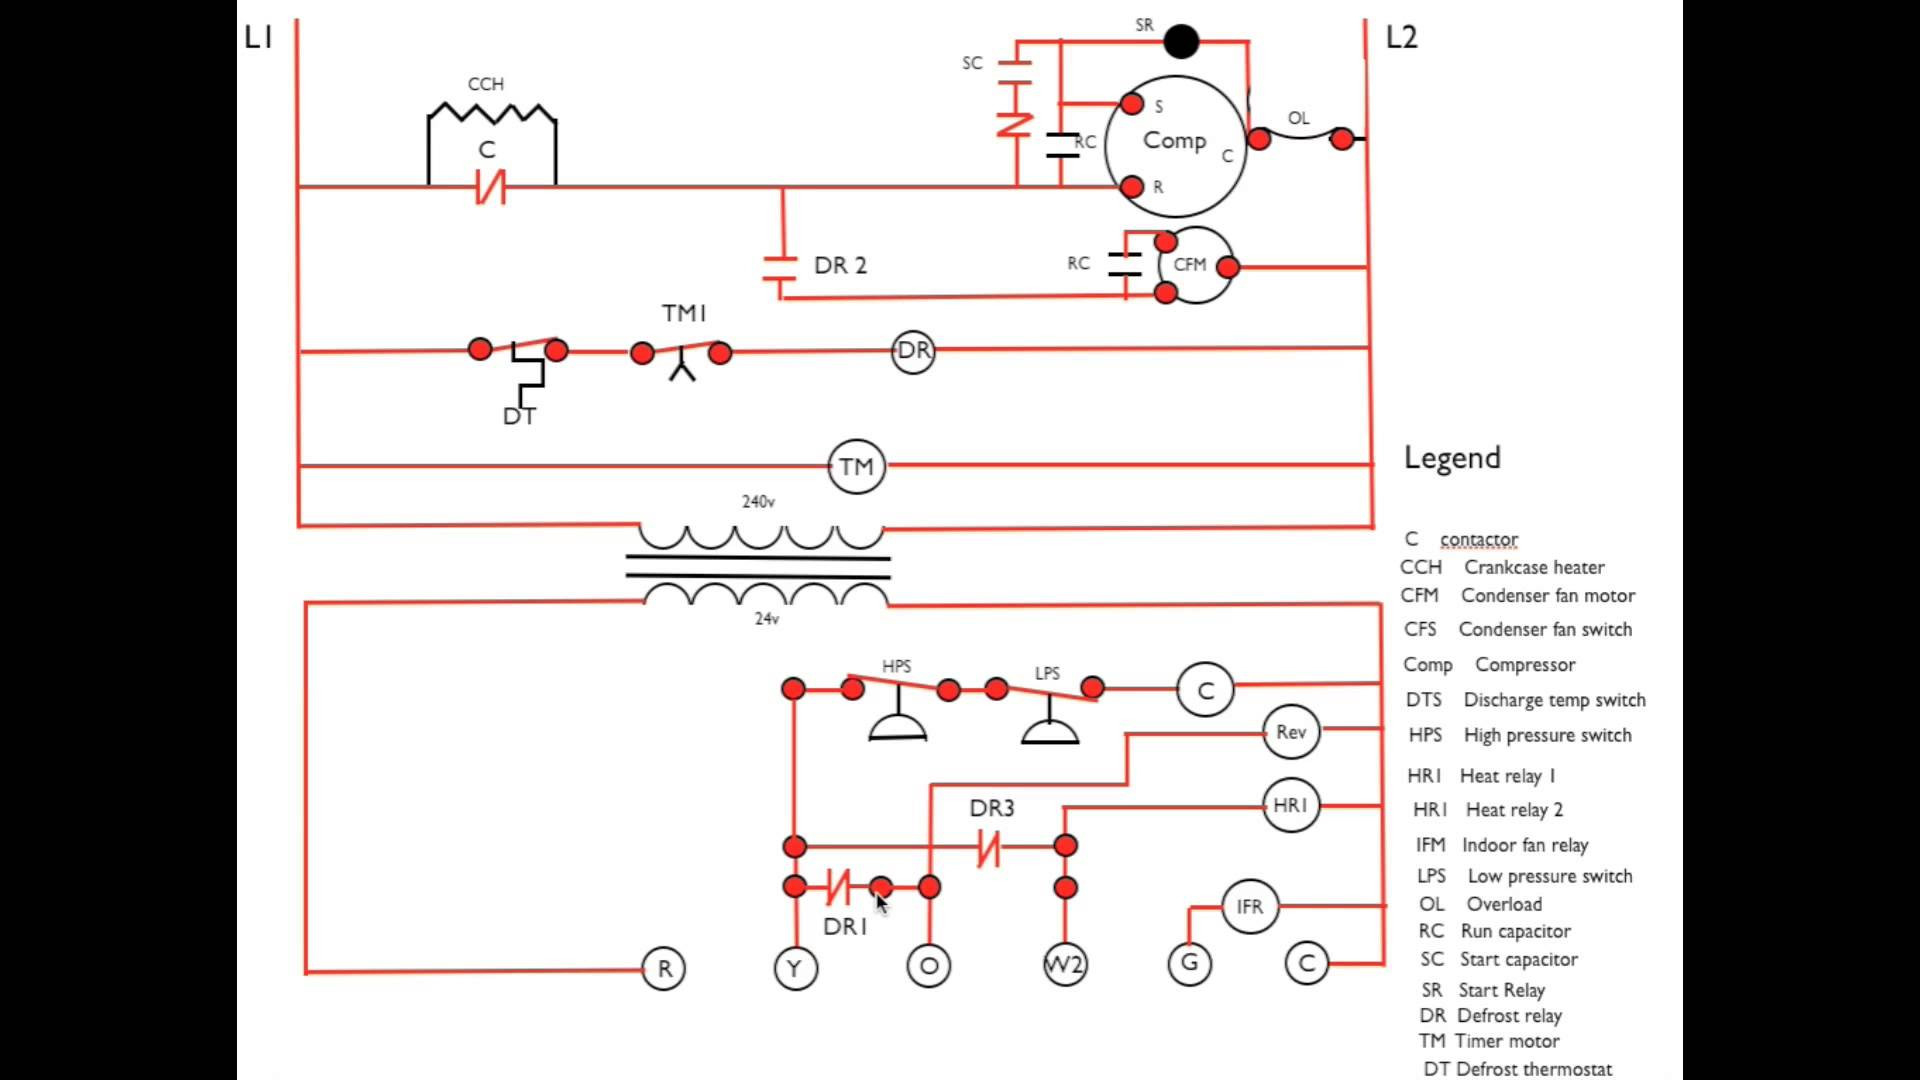 goodman defrost board wiring diagram Download-carrier defrost circuit diagram collection of wiring diagram u2022 rh wiringbase today Electric Furnace Wiring Diagrams HVAC Electrical Wiring Diagrams 11-l